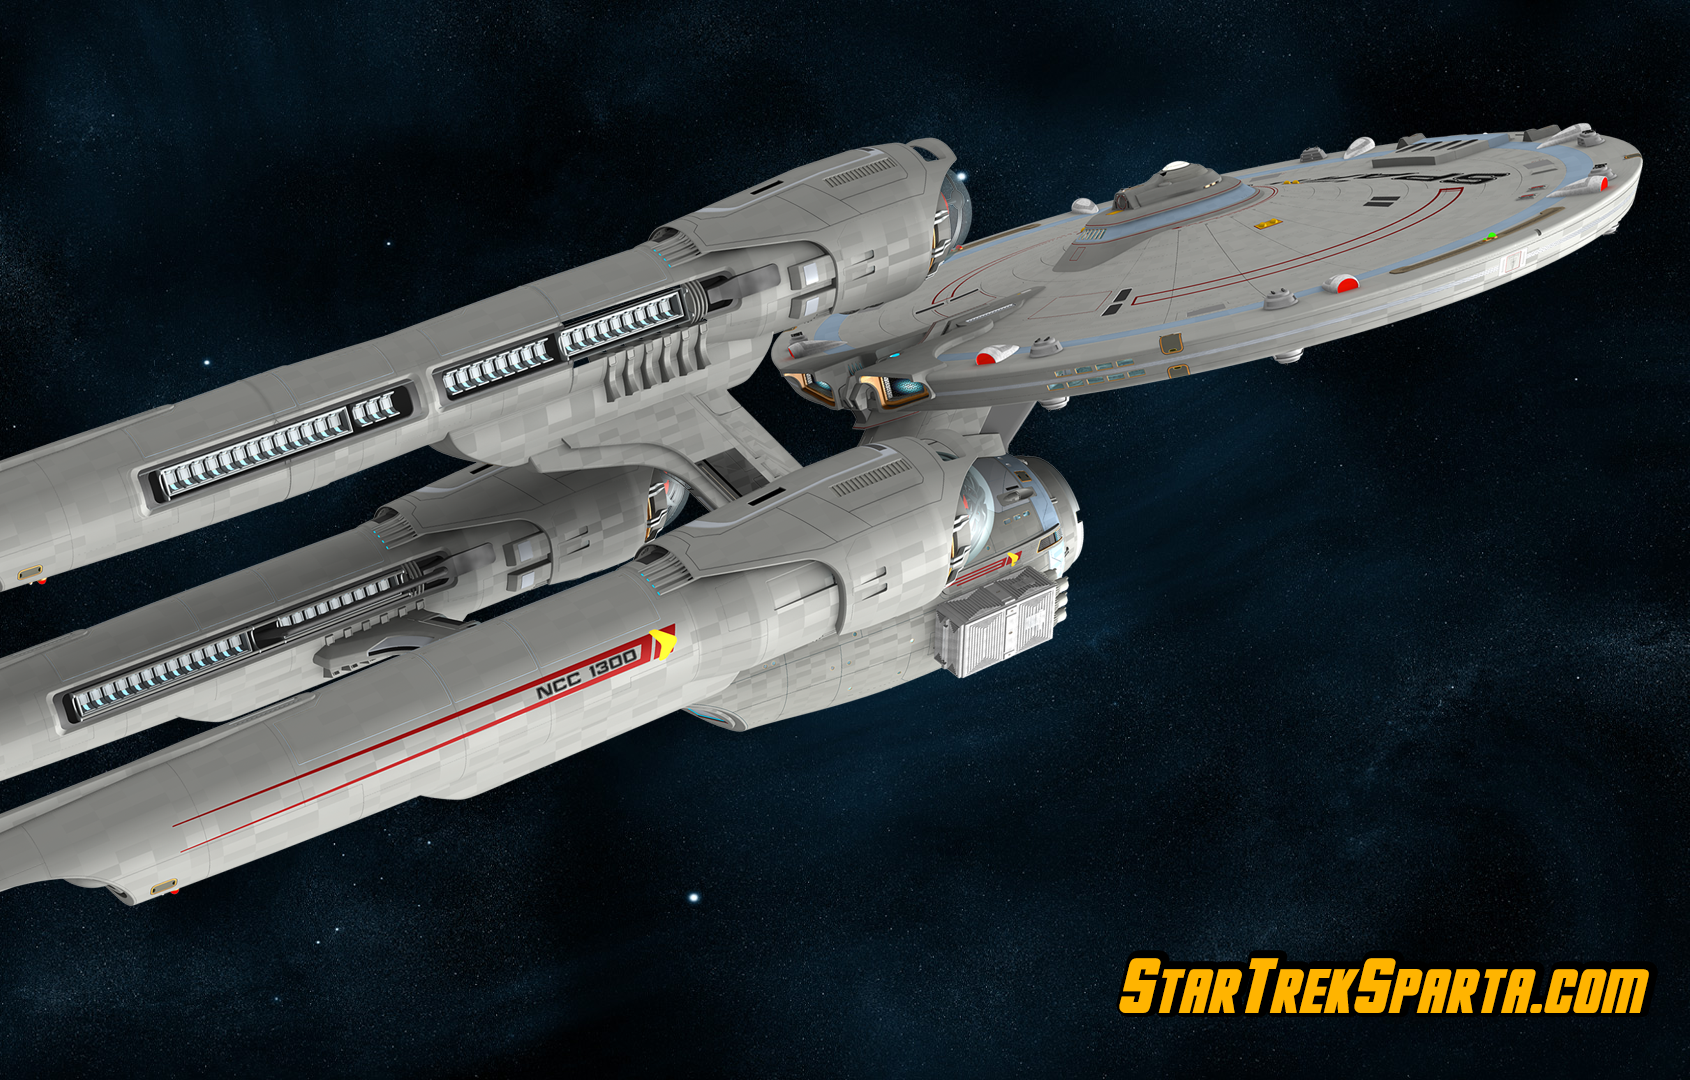 the star ship sparta ncc 1300 from star trek sparta the free webcomic set in the new jj abrams universe www star star trek art star trek rpg star trek ships pinterest